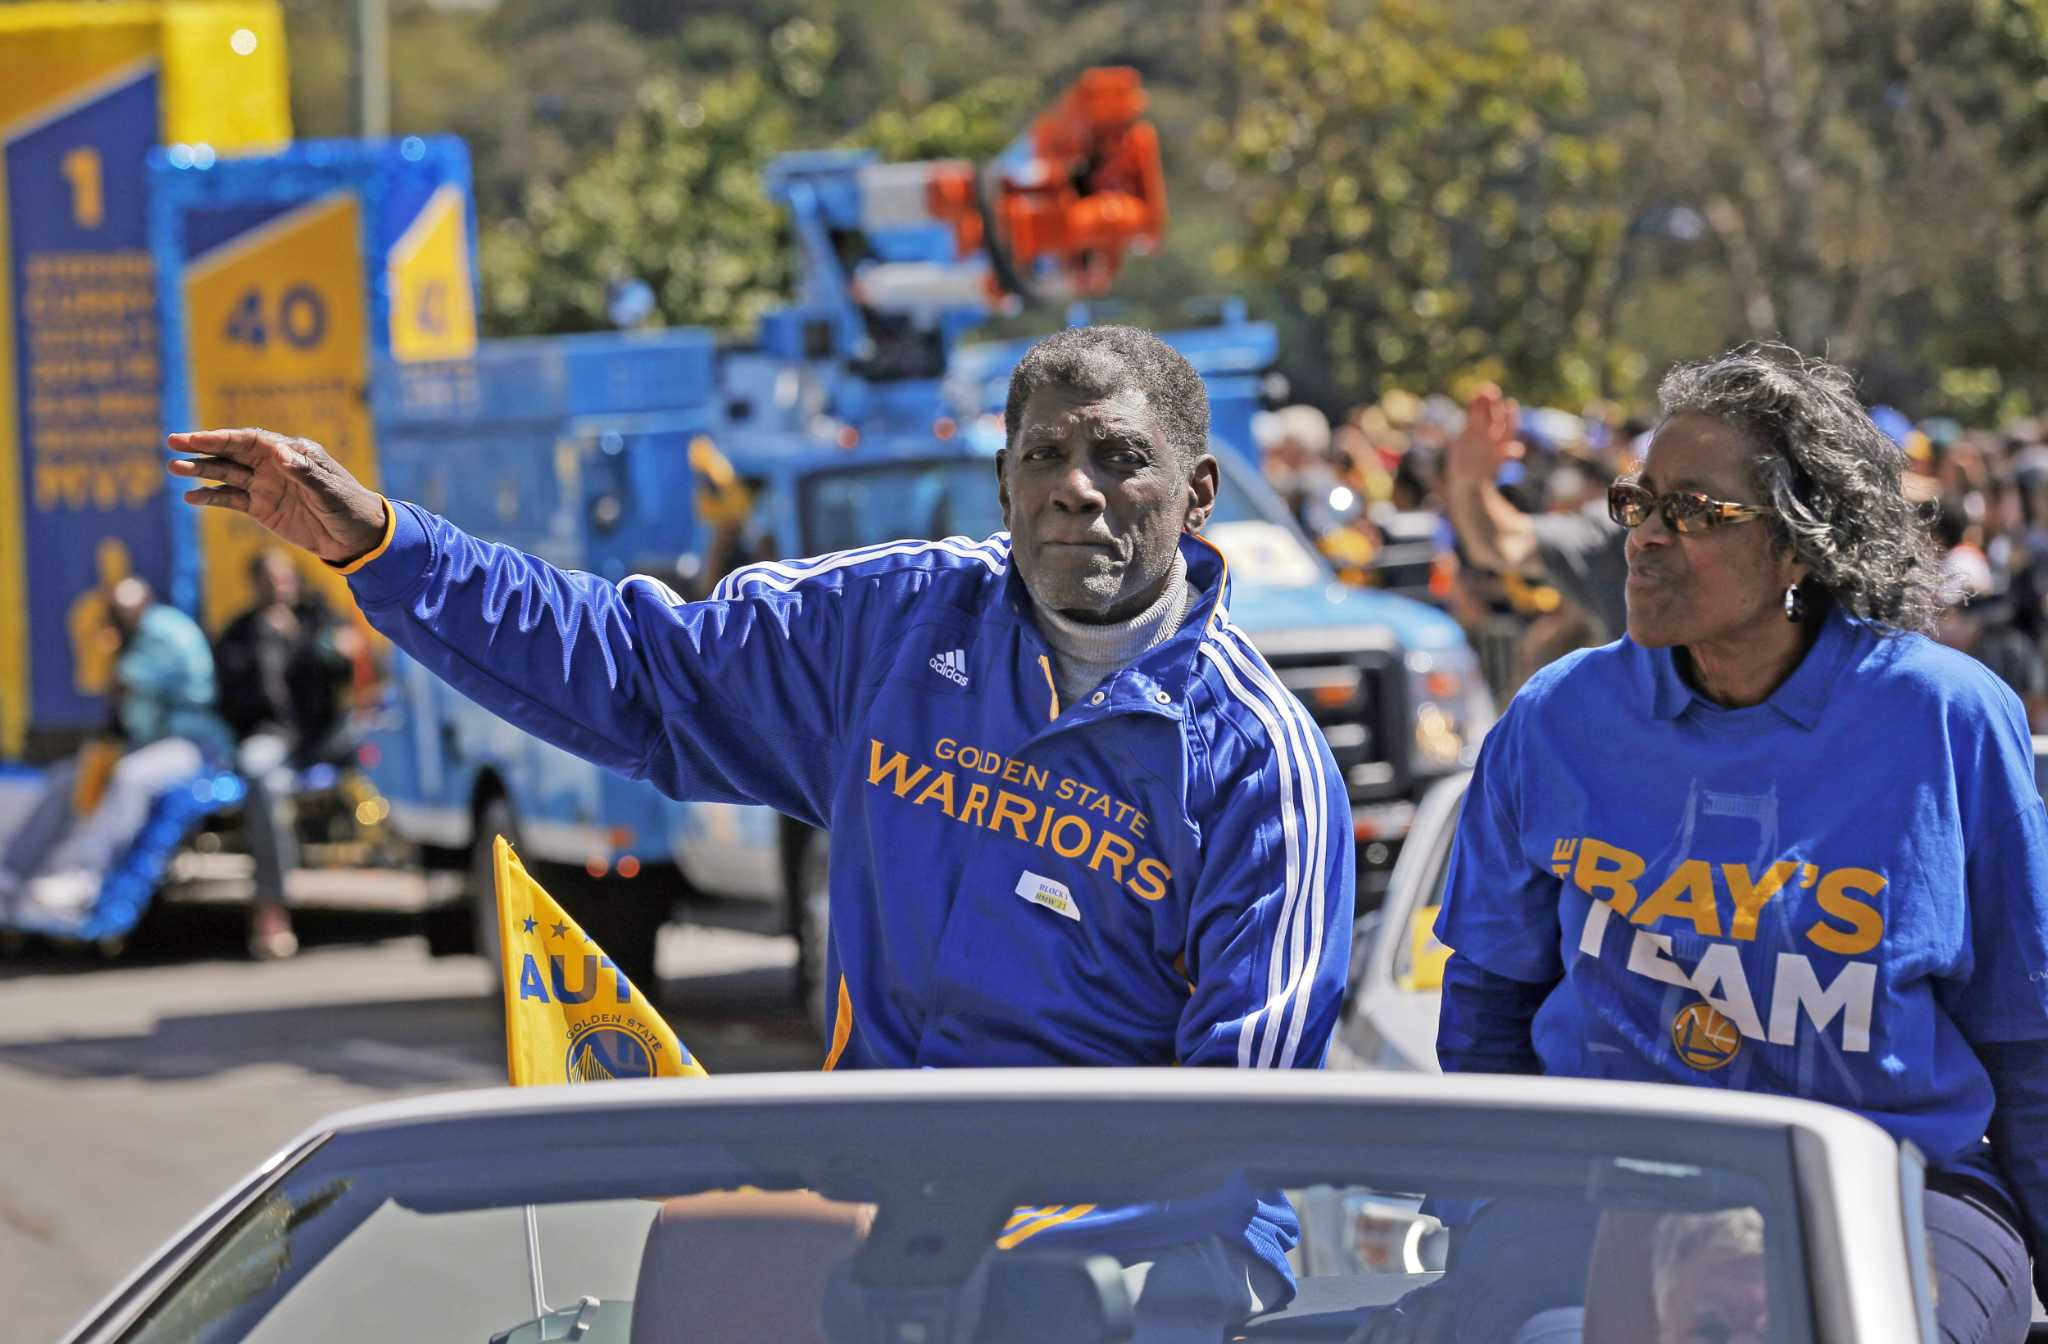 Warriors Attles wins lifetime achievement award SFGate